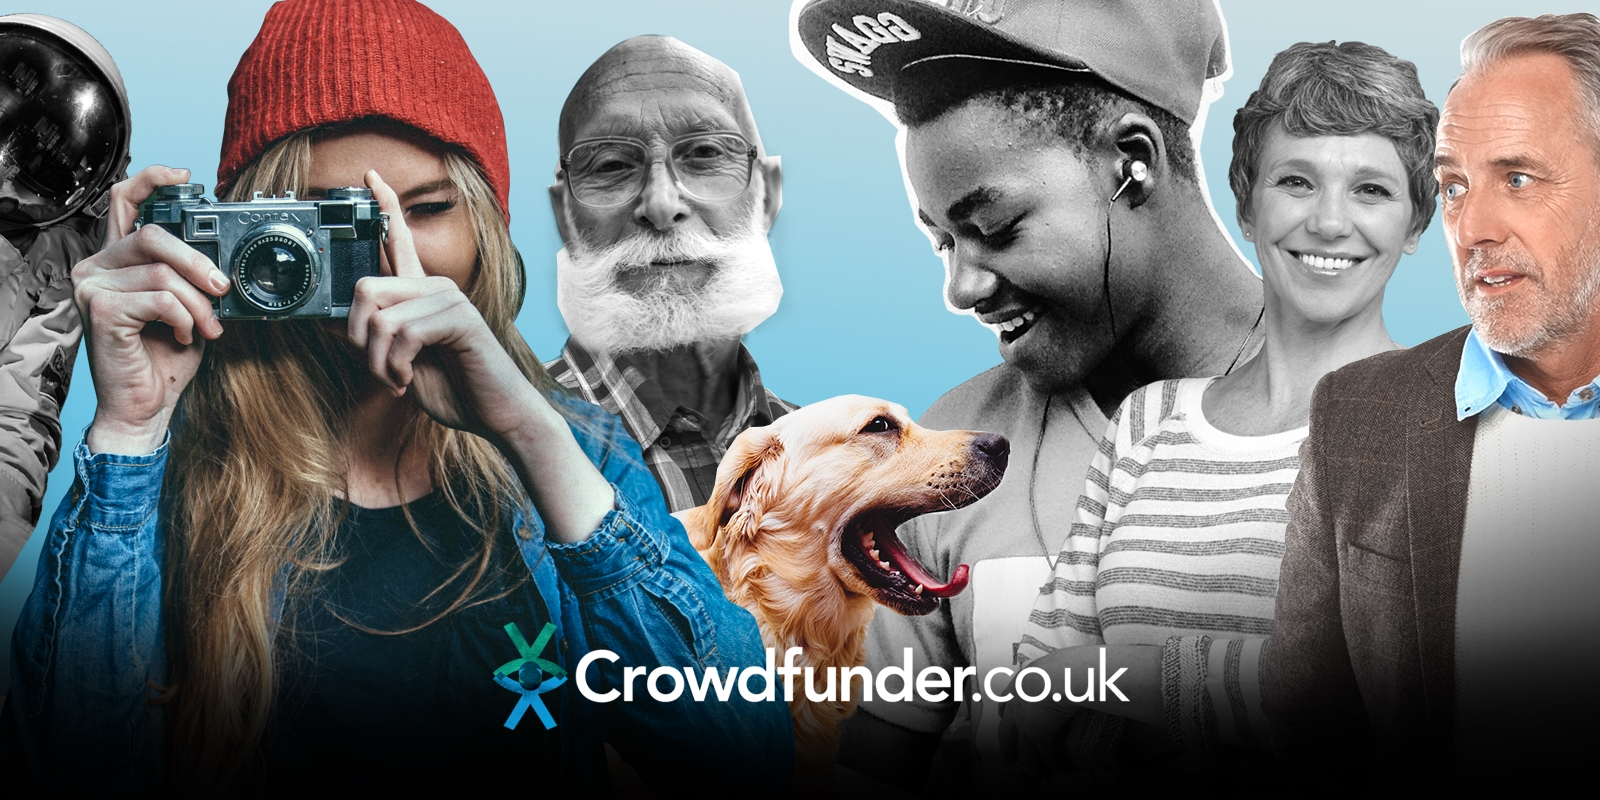 (c) Crowdfunder.co.uk